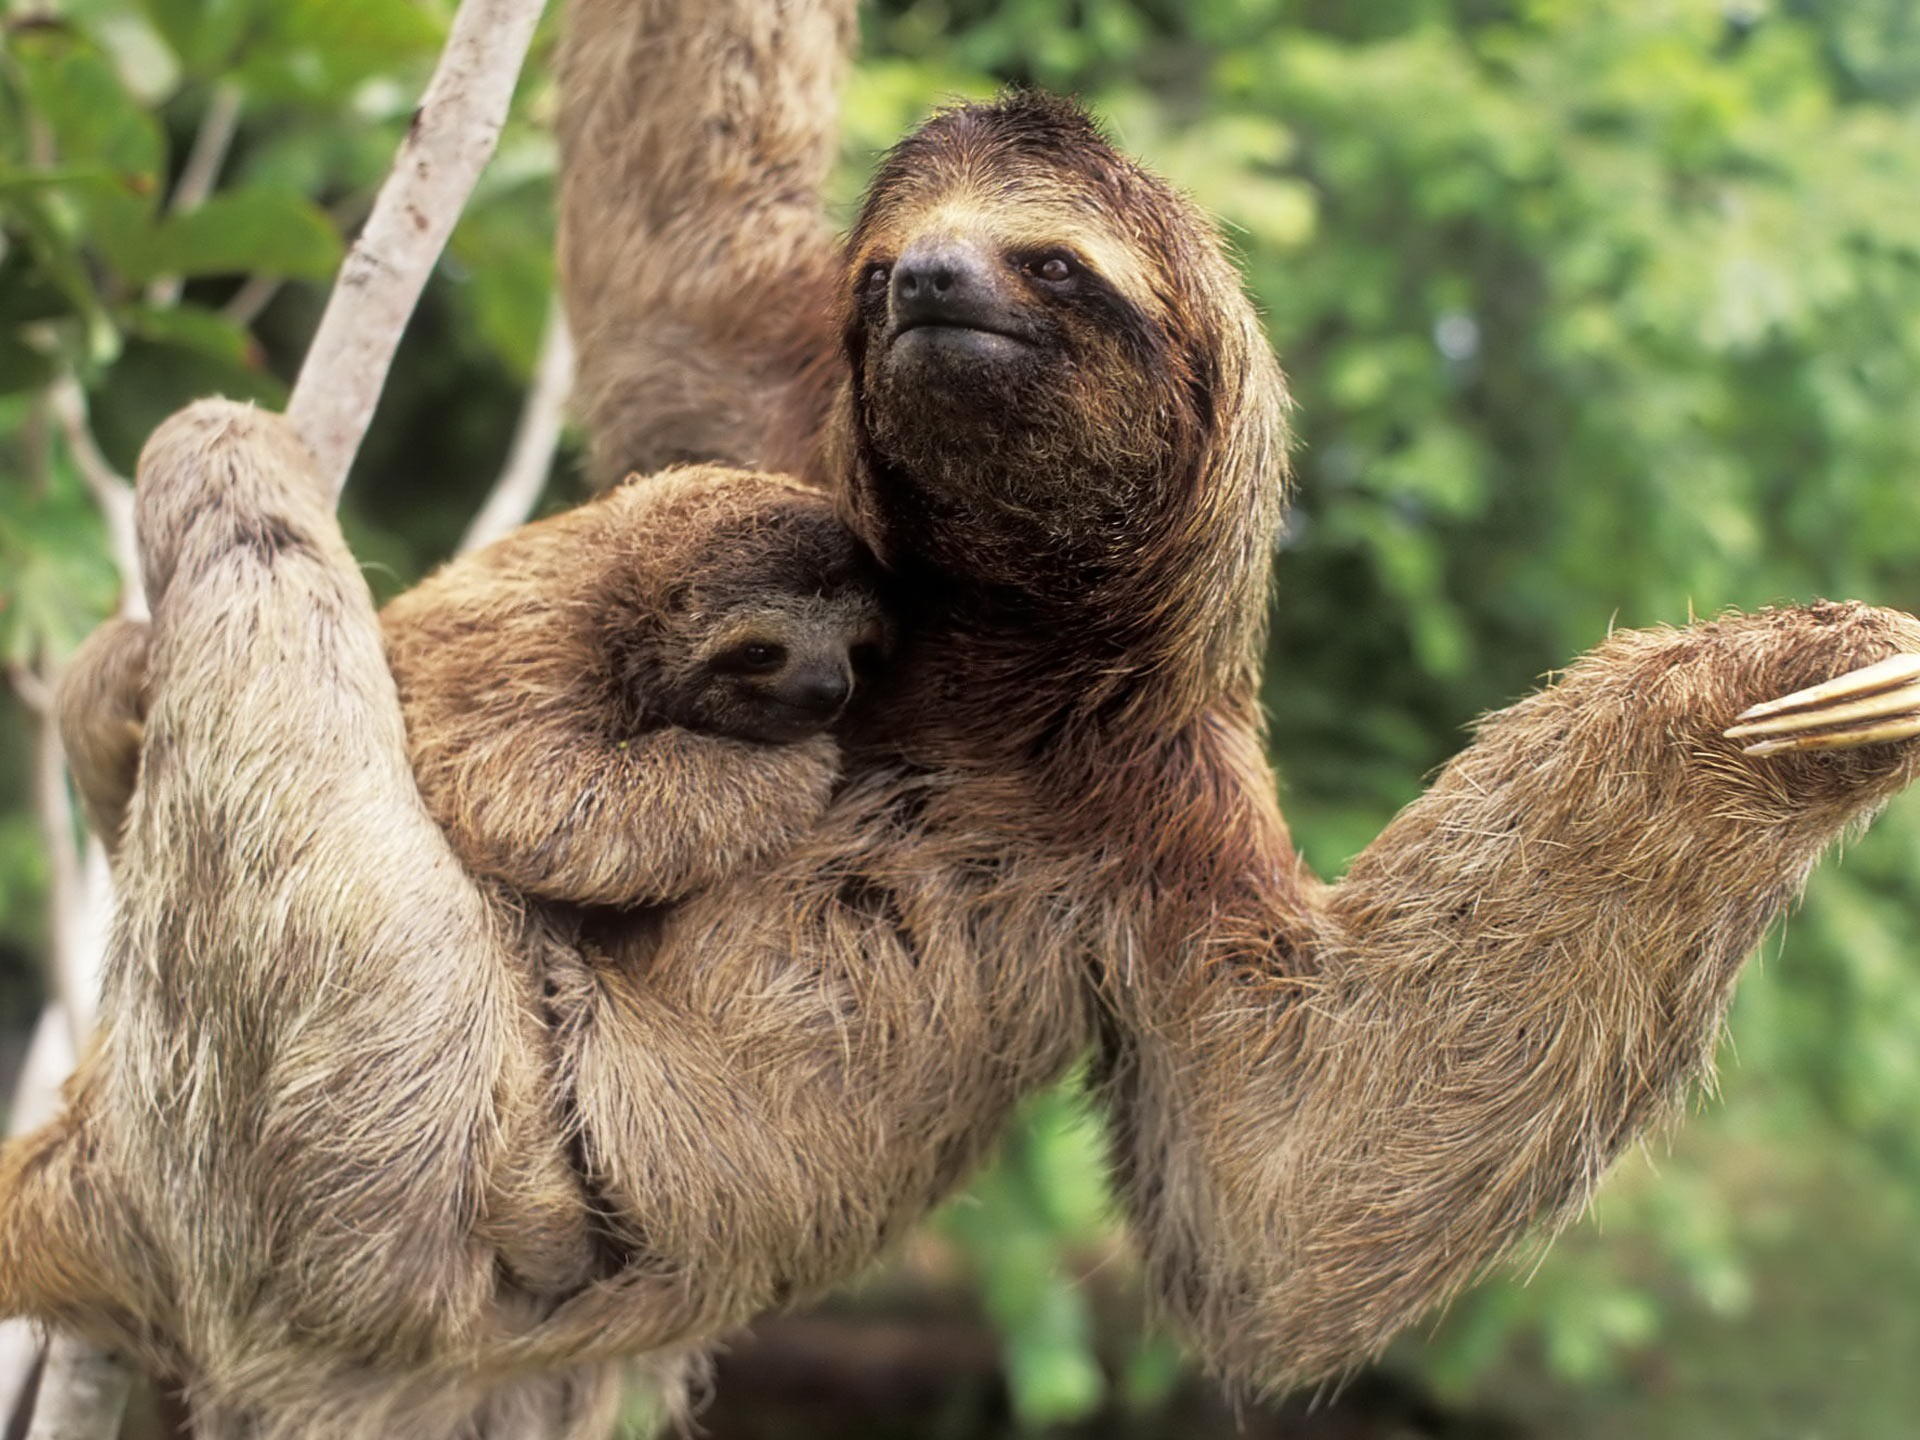 Sloth or Sloths are medium-sized mammals belonging to the families  Megalonychidae (two-